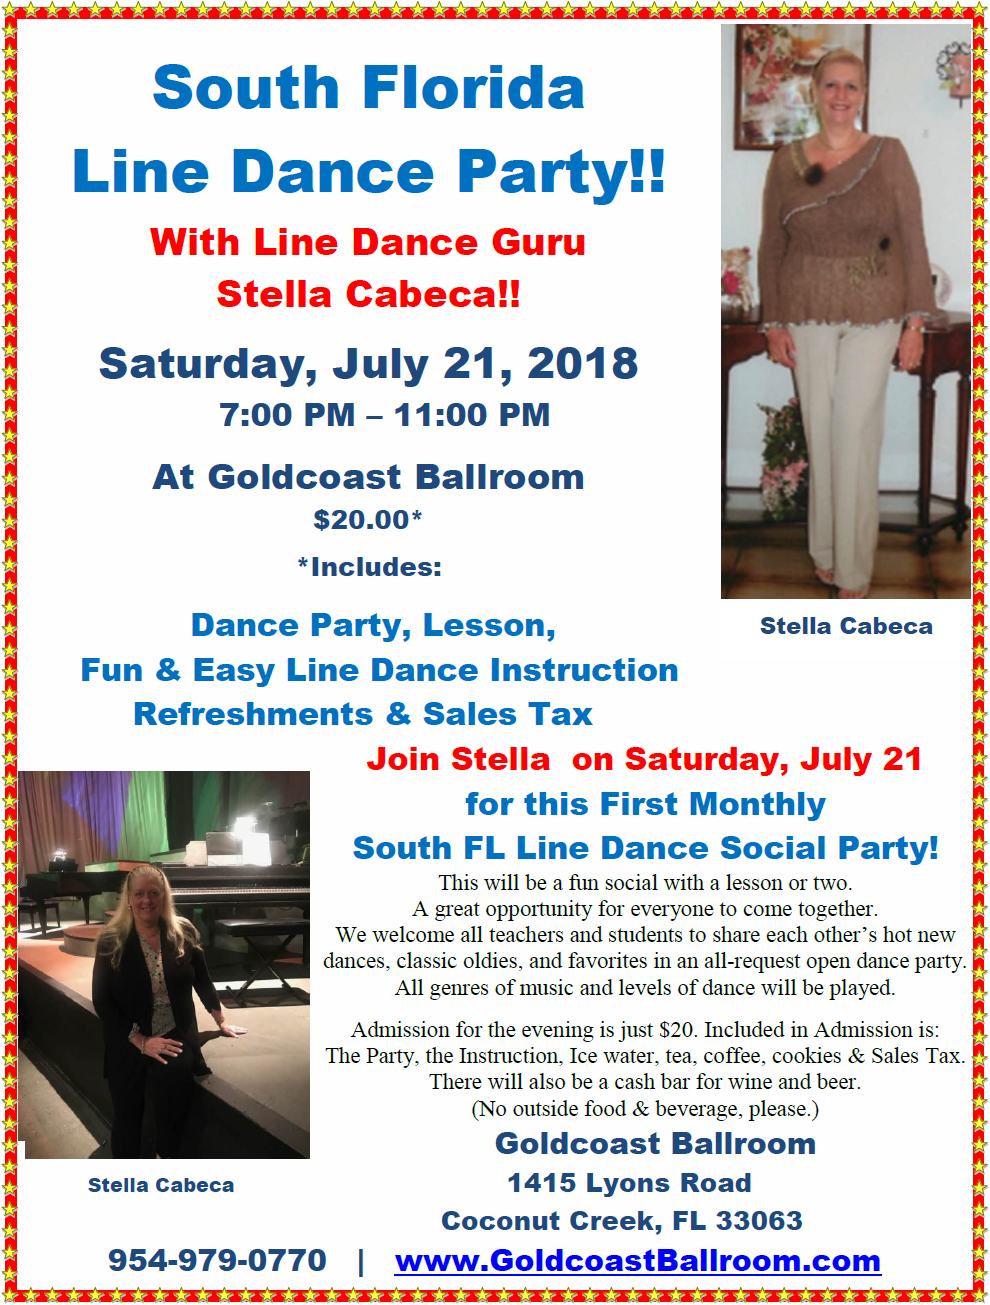 South Florida Line Dance Party - Saturday, July 21, 2018 - with Line Dance Guru Stella Cabeca